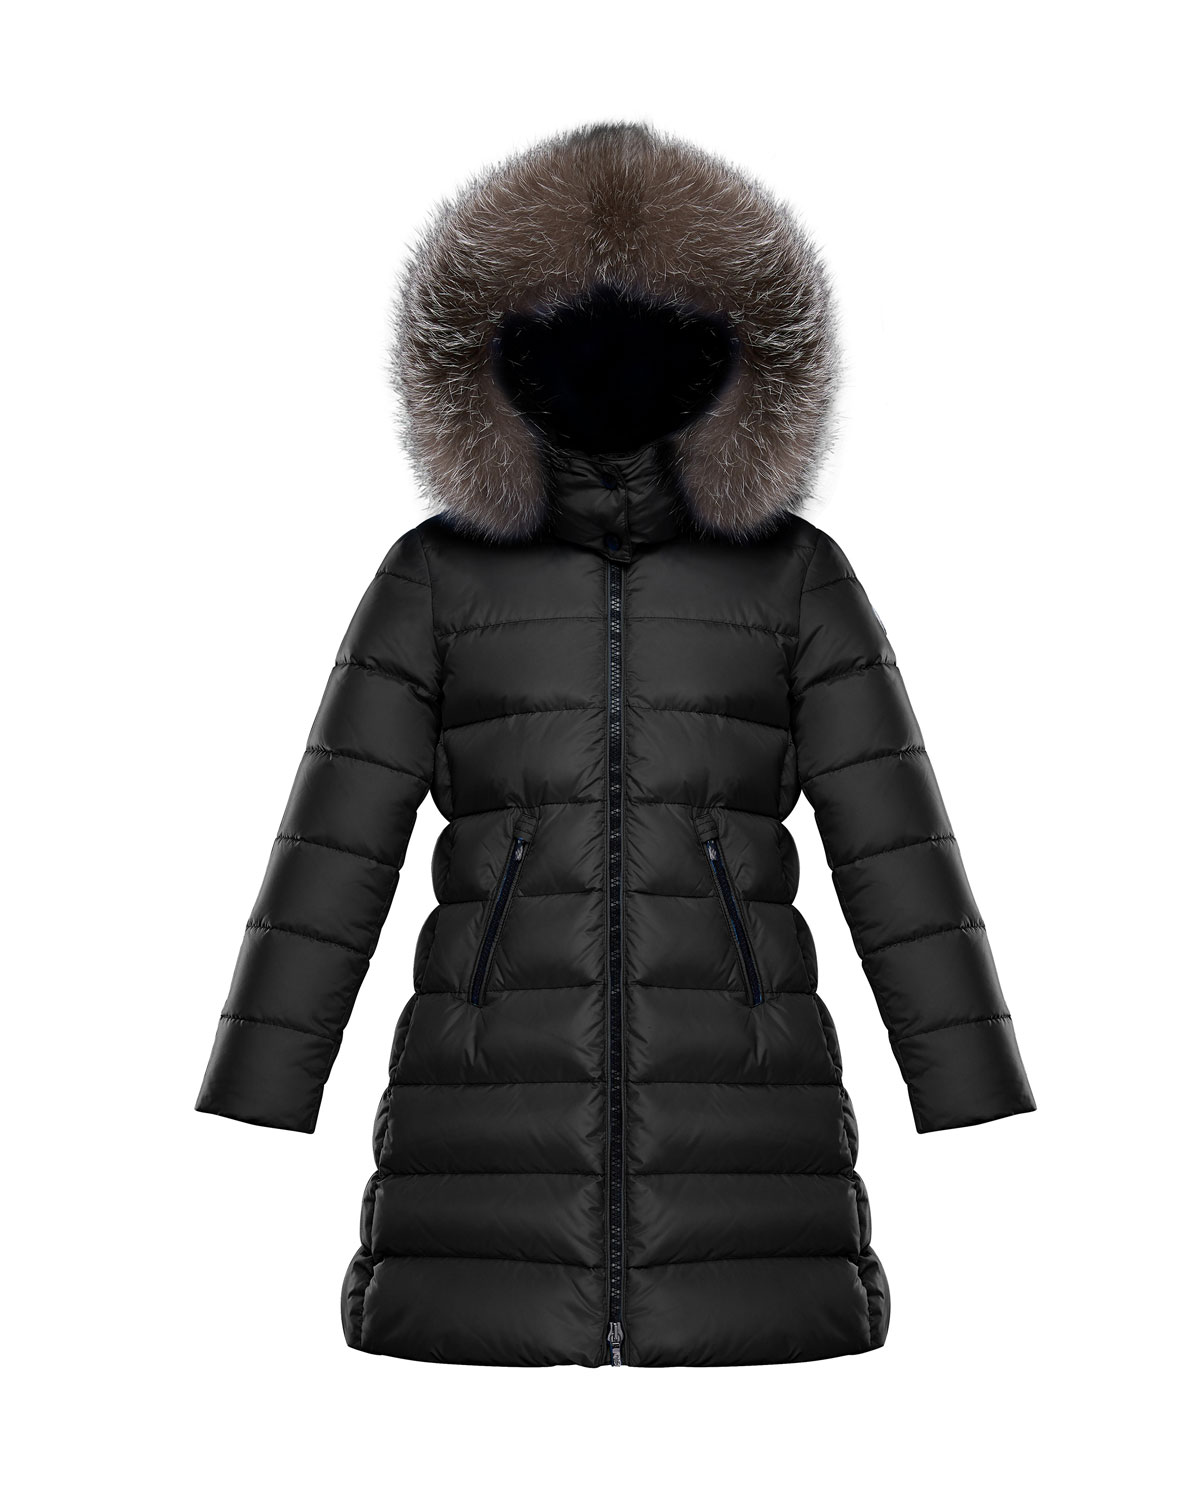 Abelle Quilted Puffer Coat w/ Fur Trim, Size 8-14